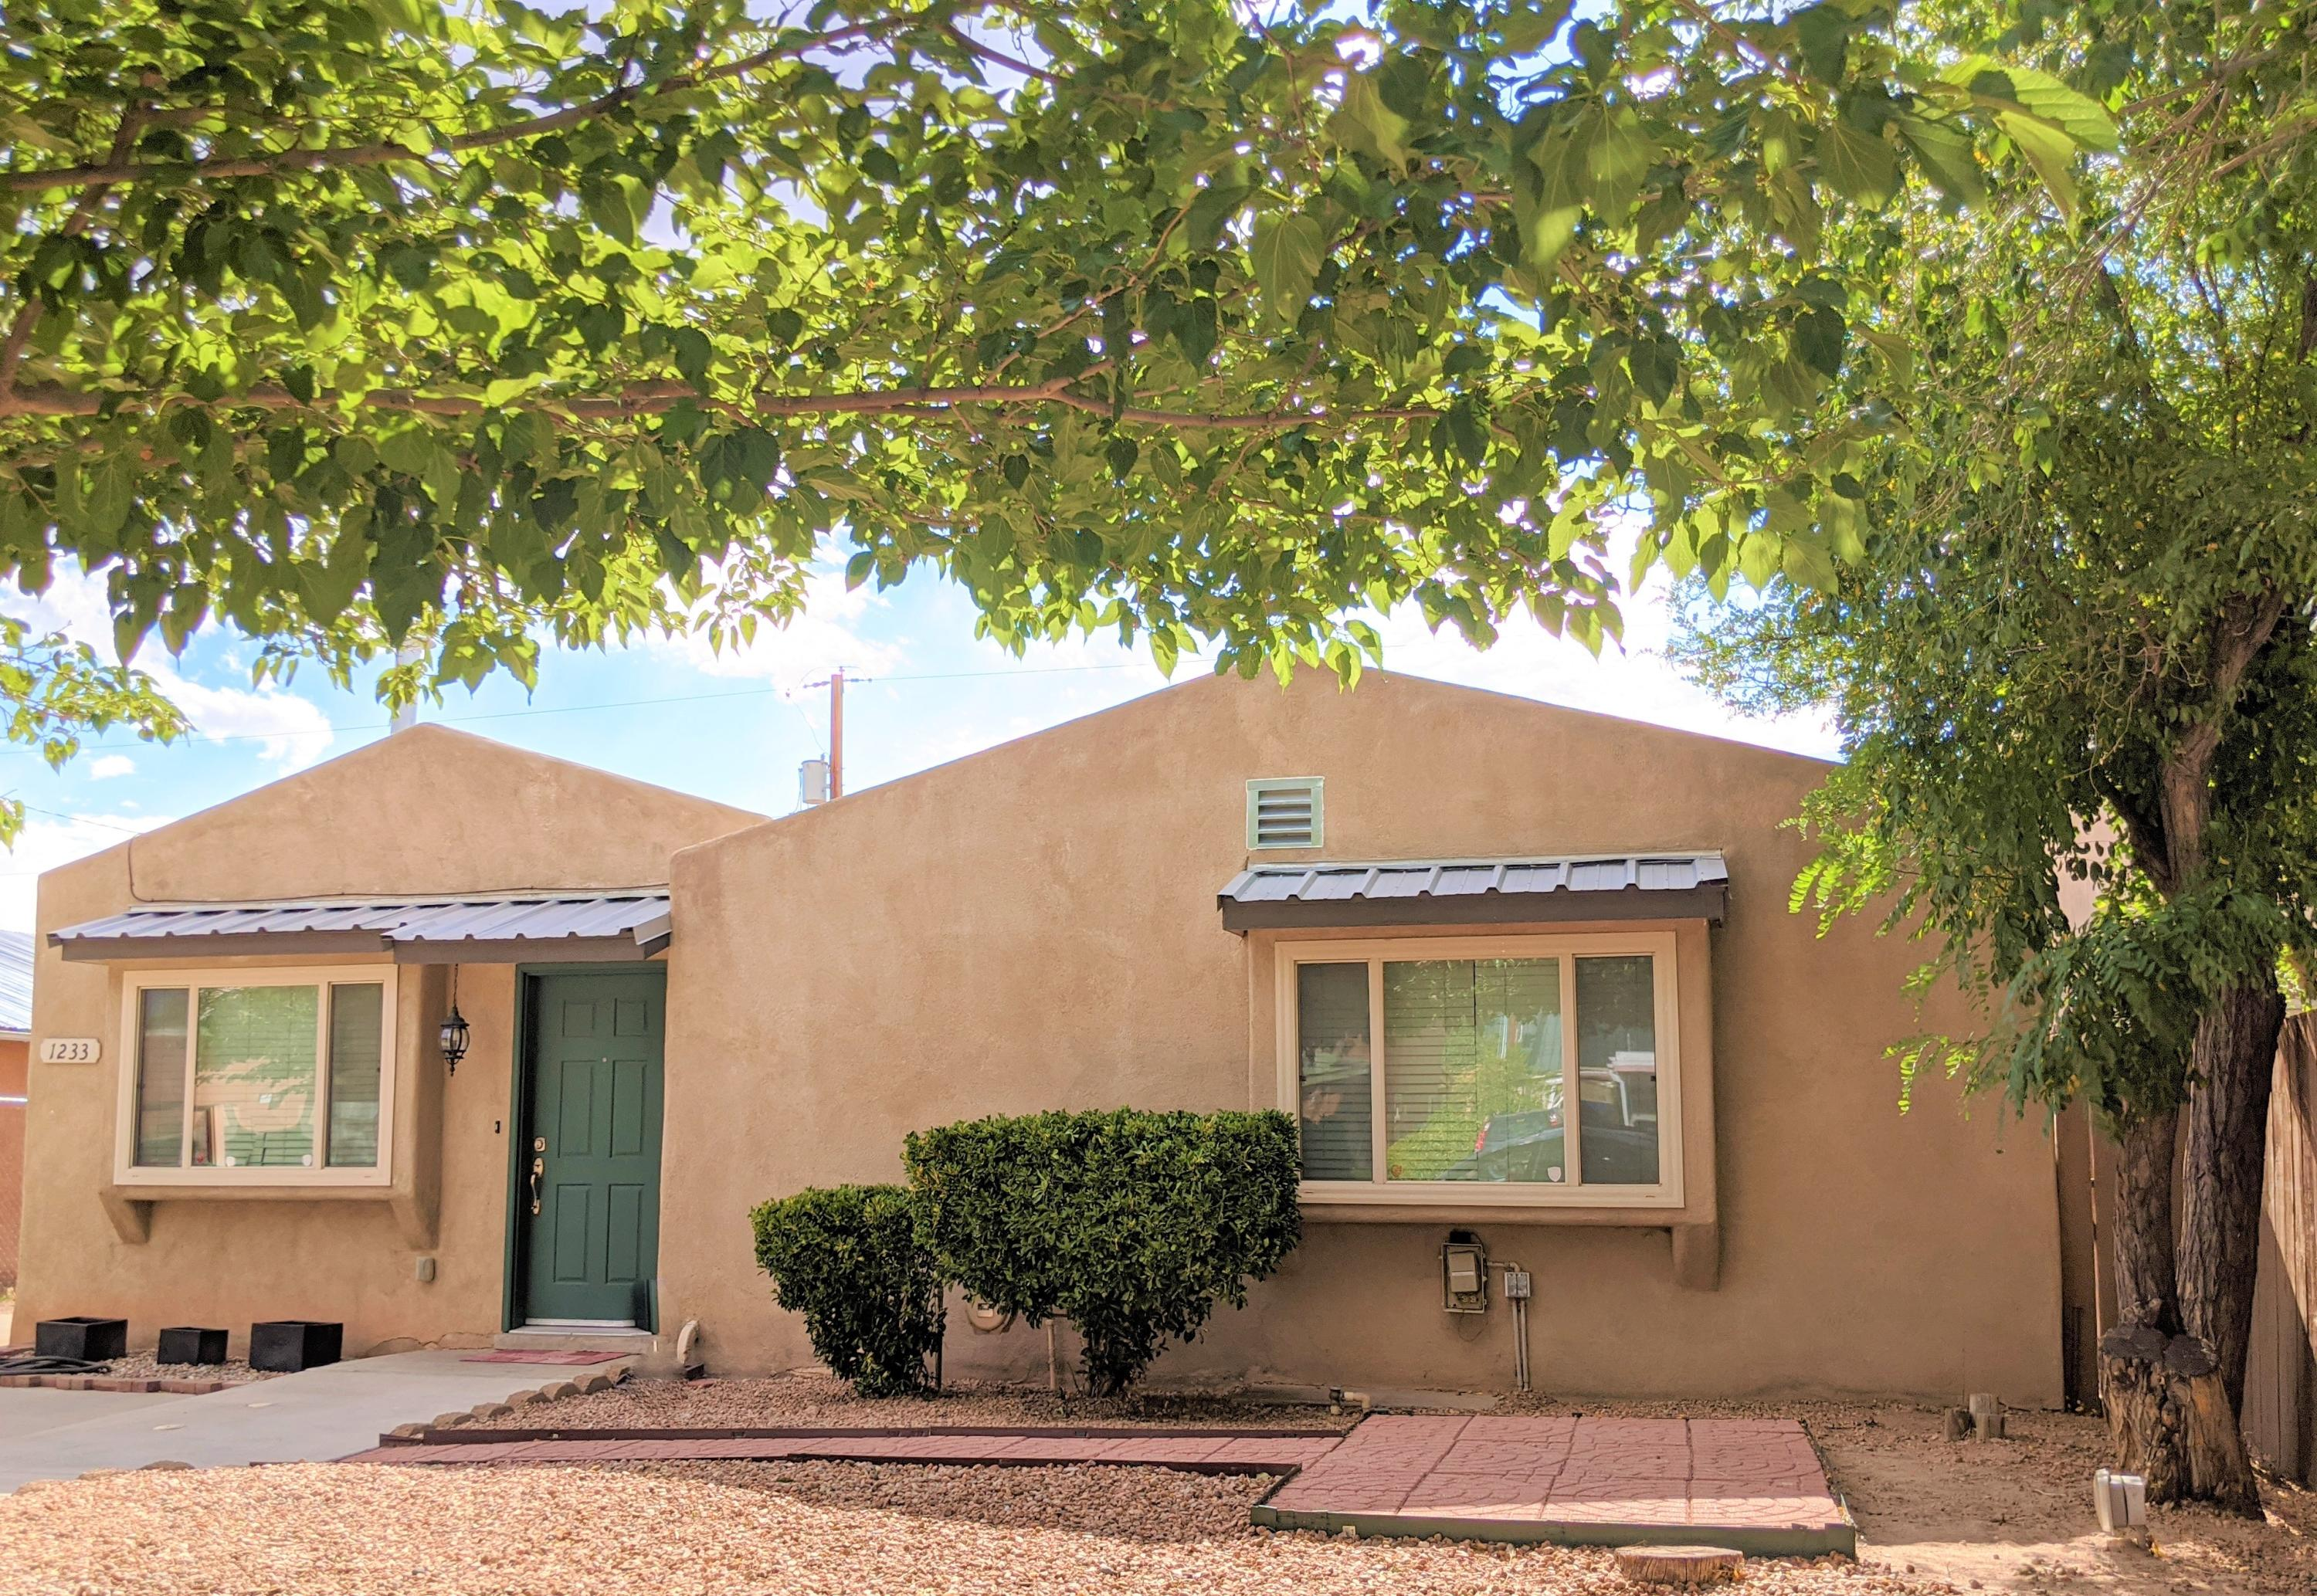 Unique 3 bedroom 3 bath split floor plan with double Master Suites (one with a private entrance!) in the Wells Park Neighborhood.  Tons of cabinet space in this bright kitchen. The spacious master spa bath includes a roll in shower and double door entry! Interior bedroom doors are gorgeous solid wood, and are at least 36'' wide, which makes the home wheelchair friendly! No Carpet in this home!  Floors are original hard wood, wood laminate, and ceramic tile.  The vinyl clad double pane windows cut down the utility bills. Master Cool like evaporative cooler to keep you chill in the summer! Cozy gas fireplace to keep you snug in the winter! Large bedrooms for this area of town. The roof with metal accents was tuned up this Summer.